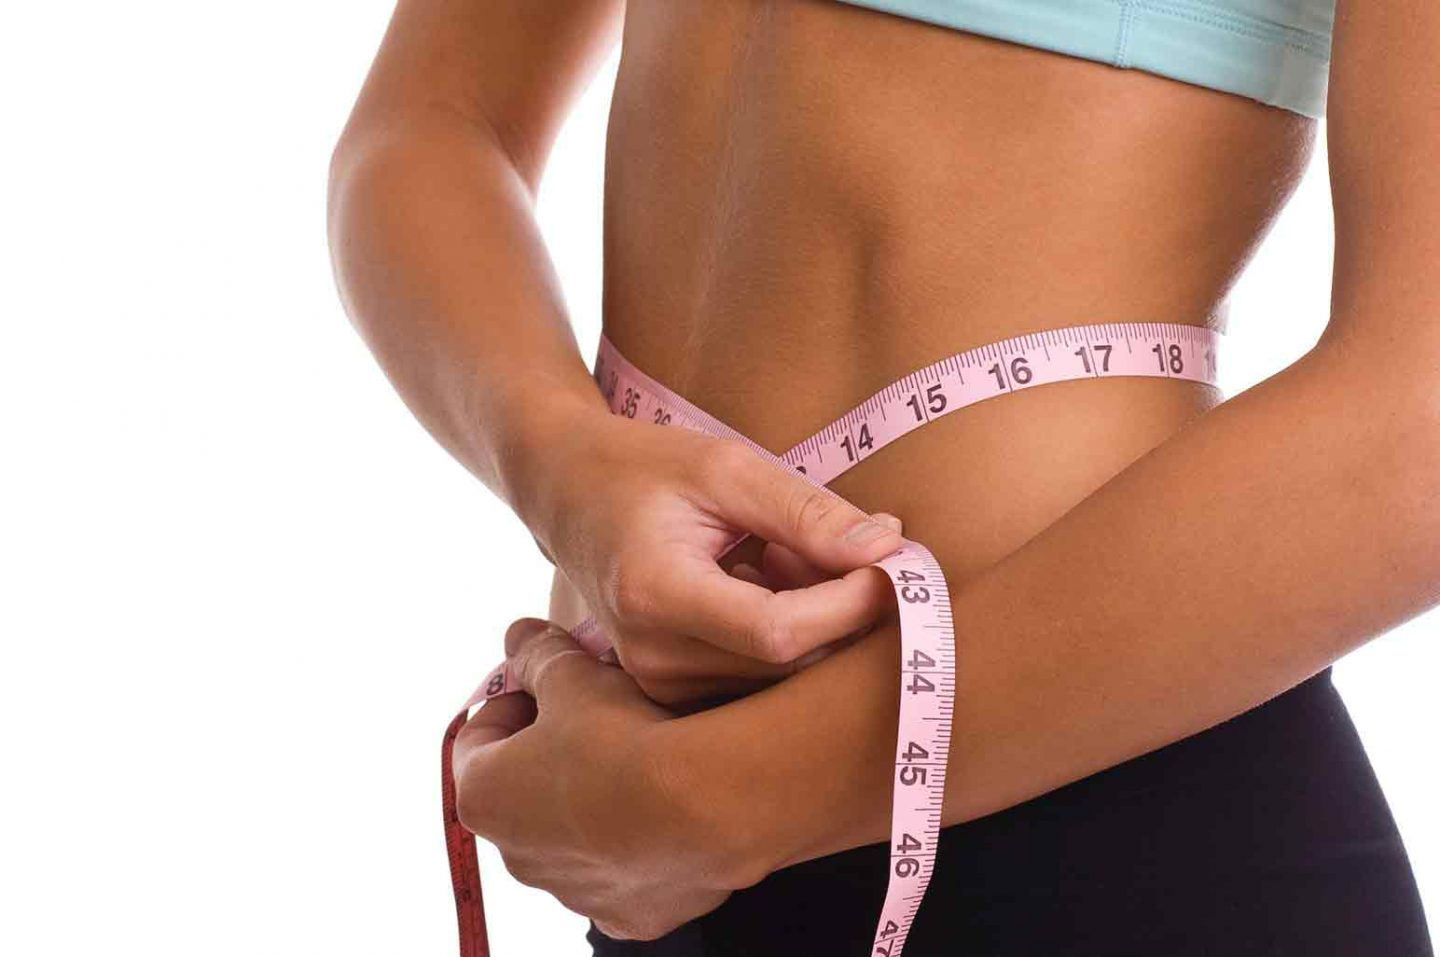 Surgical Procedures to Lose Weight